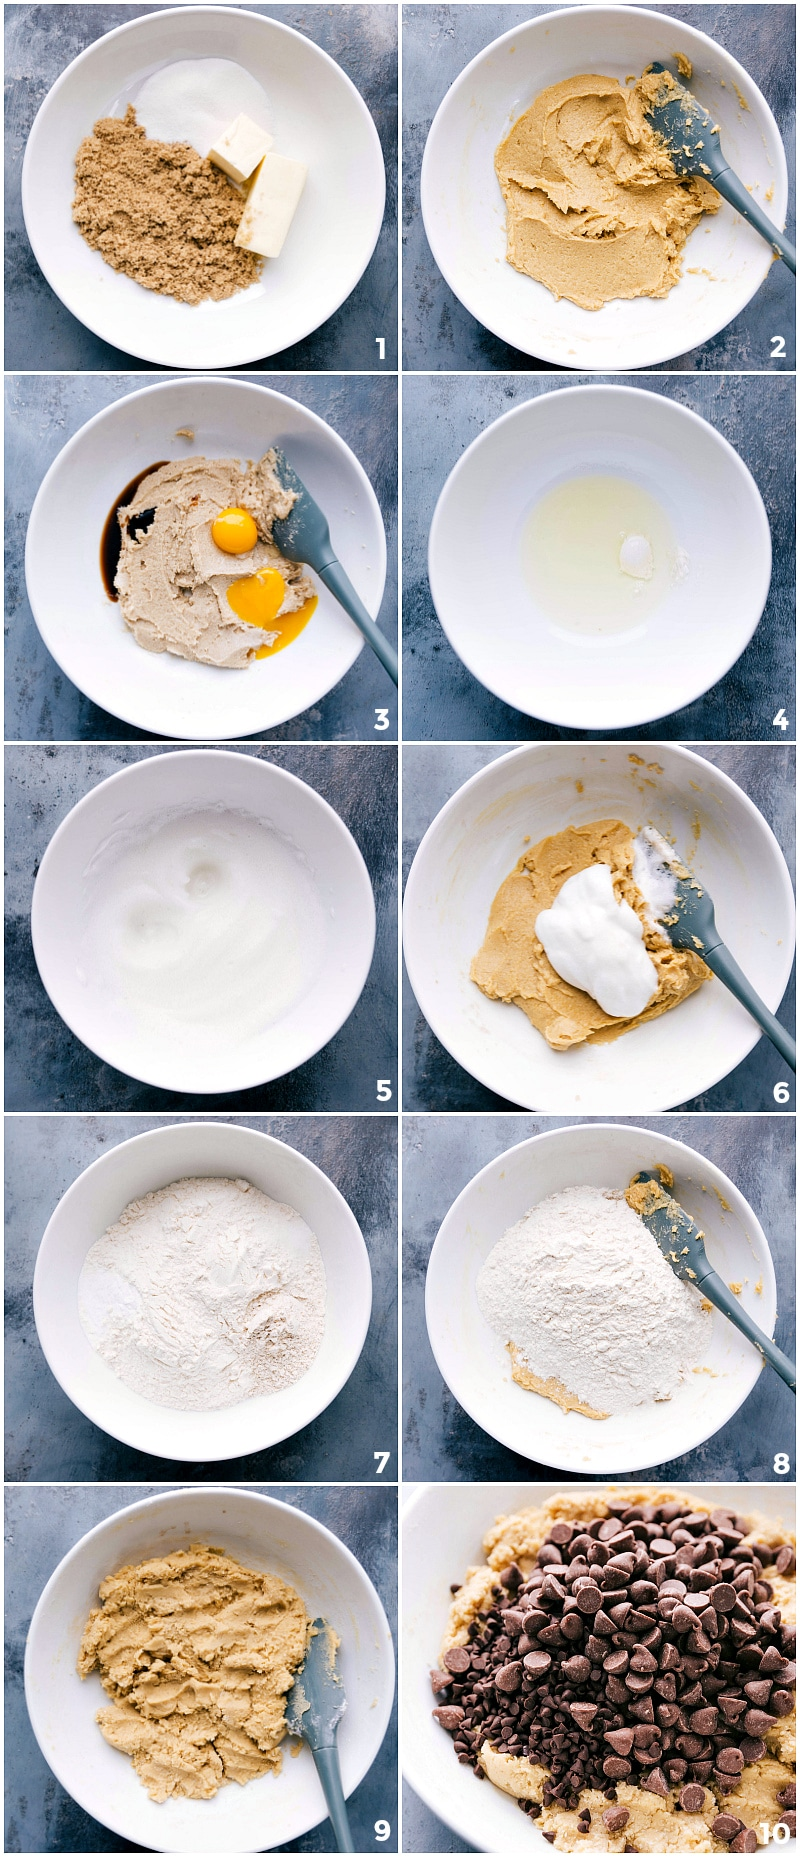 Process shots: combining sugar and wet ingredients; mixing well; combining dry ingredients; adding dry ingredients to the wet; mixing; adding two types of chocolate chips.